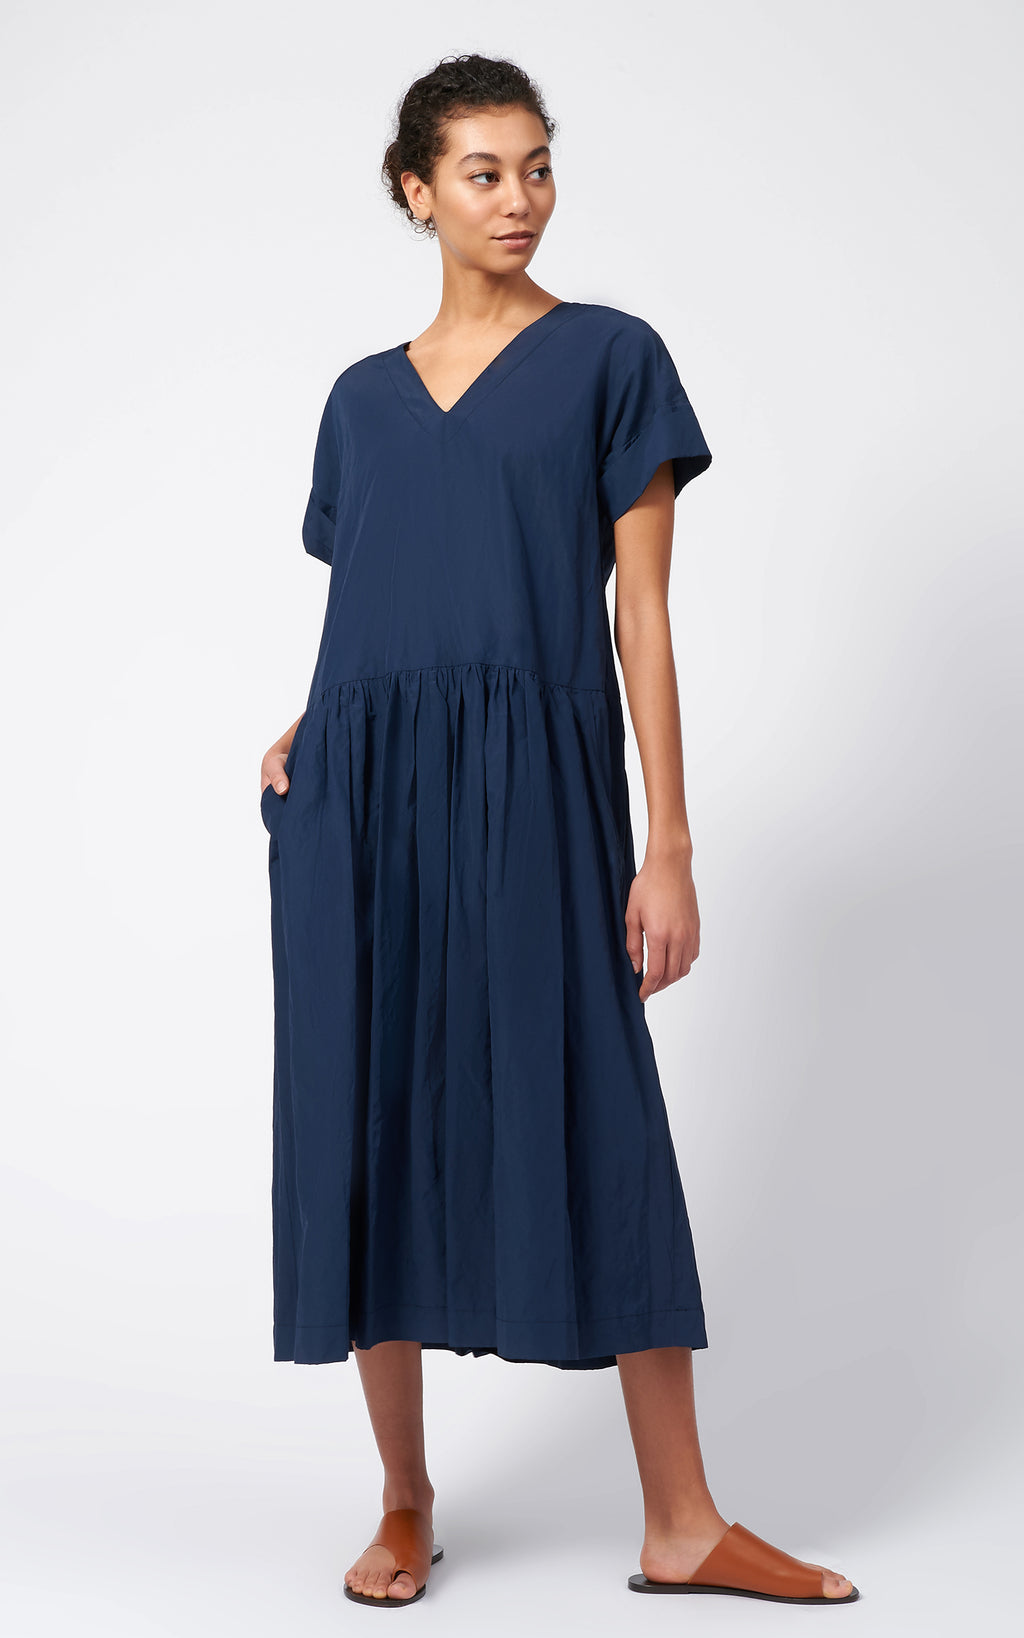 SHIRRED BOTTOM V-NECK DRESS - NAVY